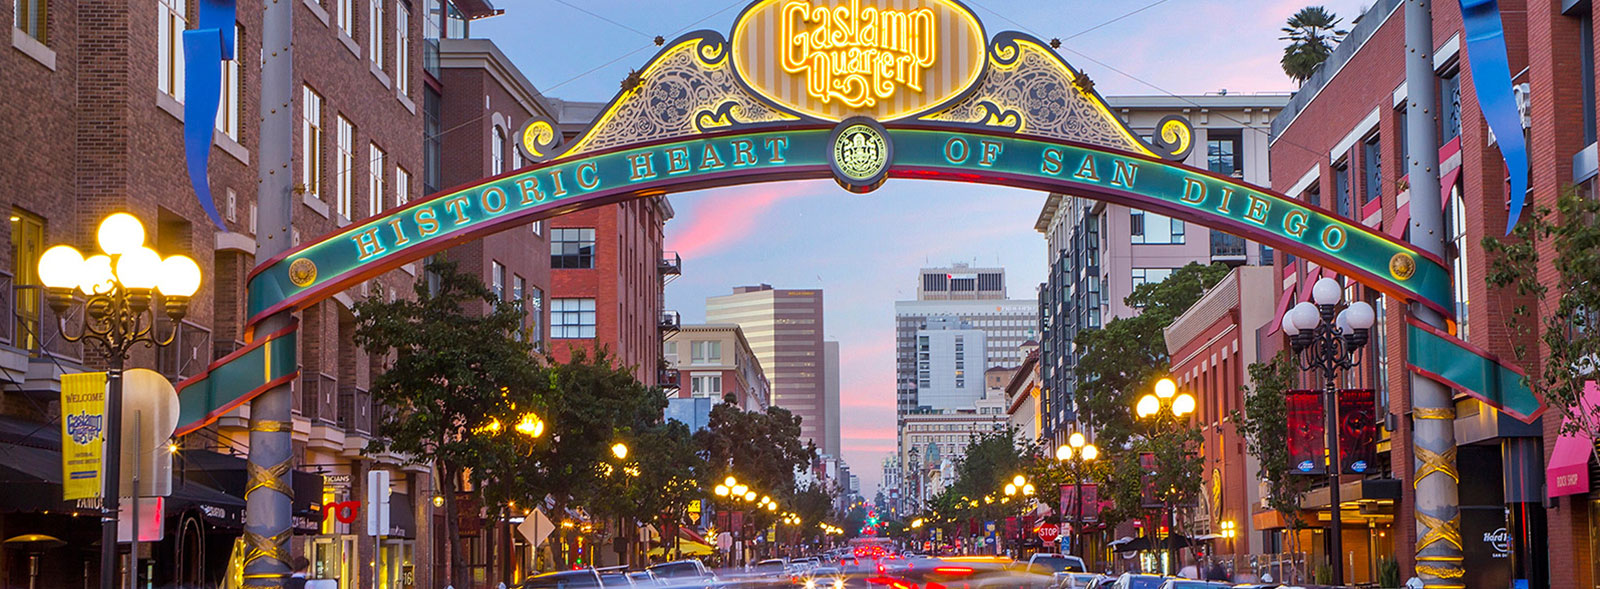 Gaslamp Quarter Eat Drink Dance Explore History